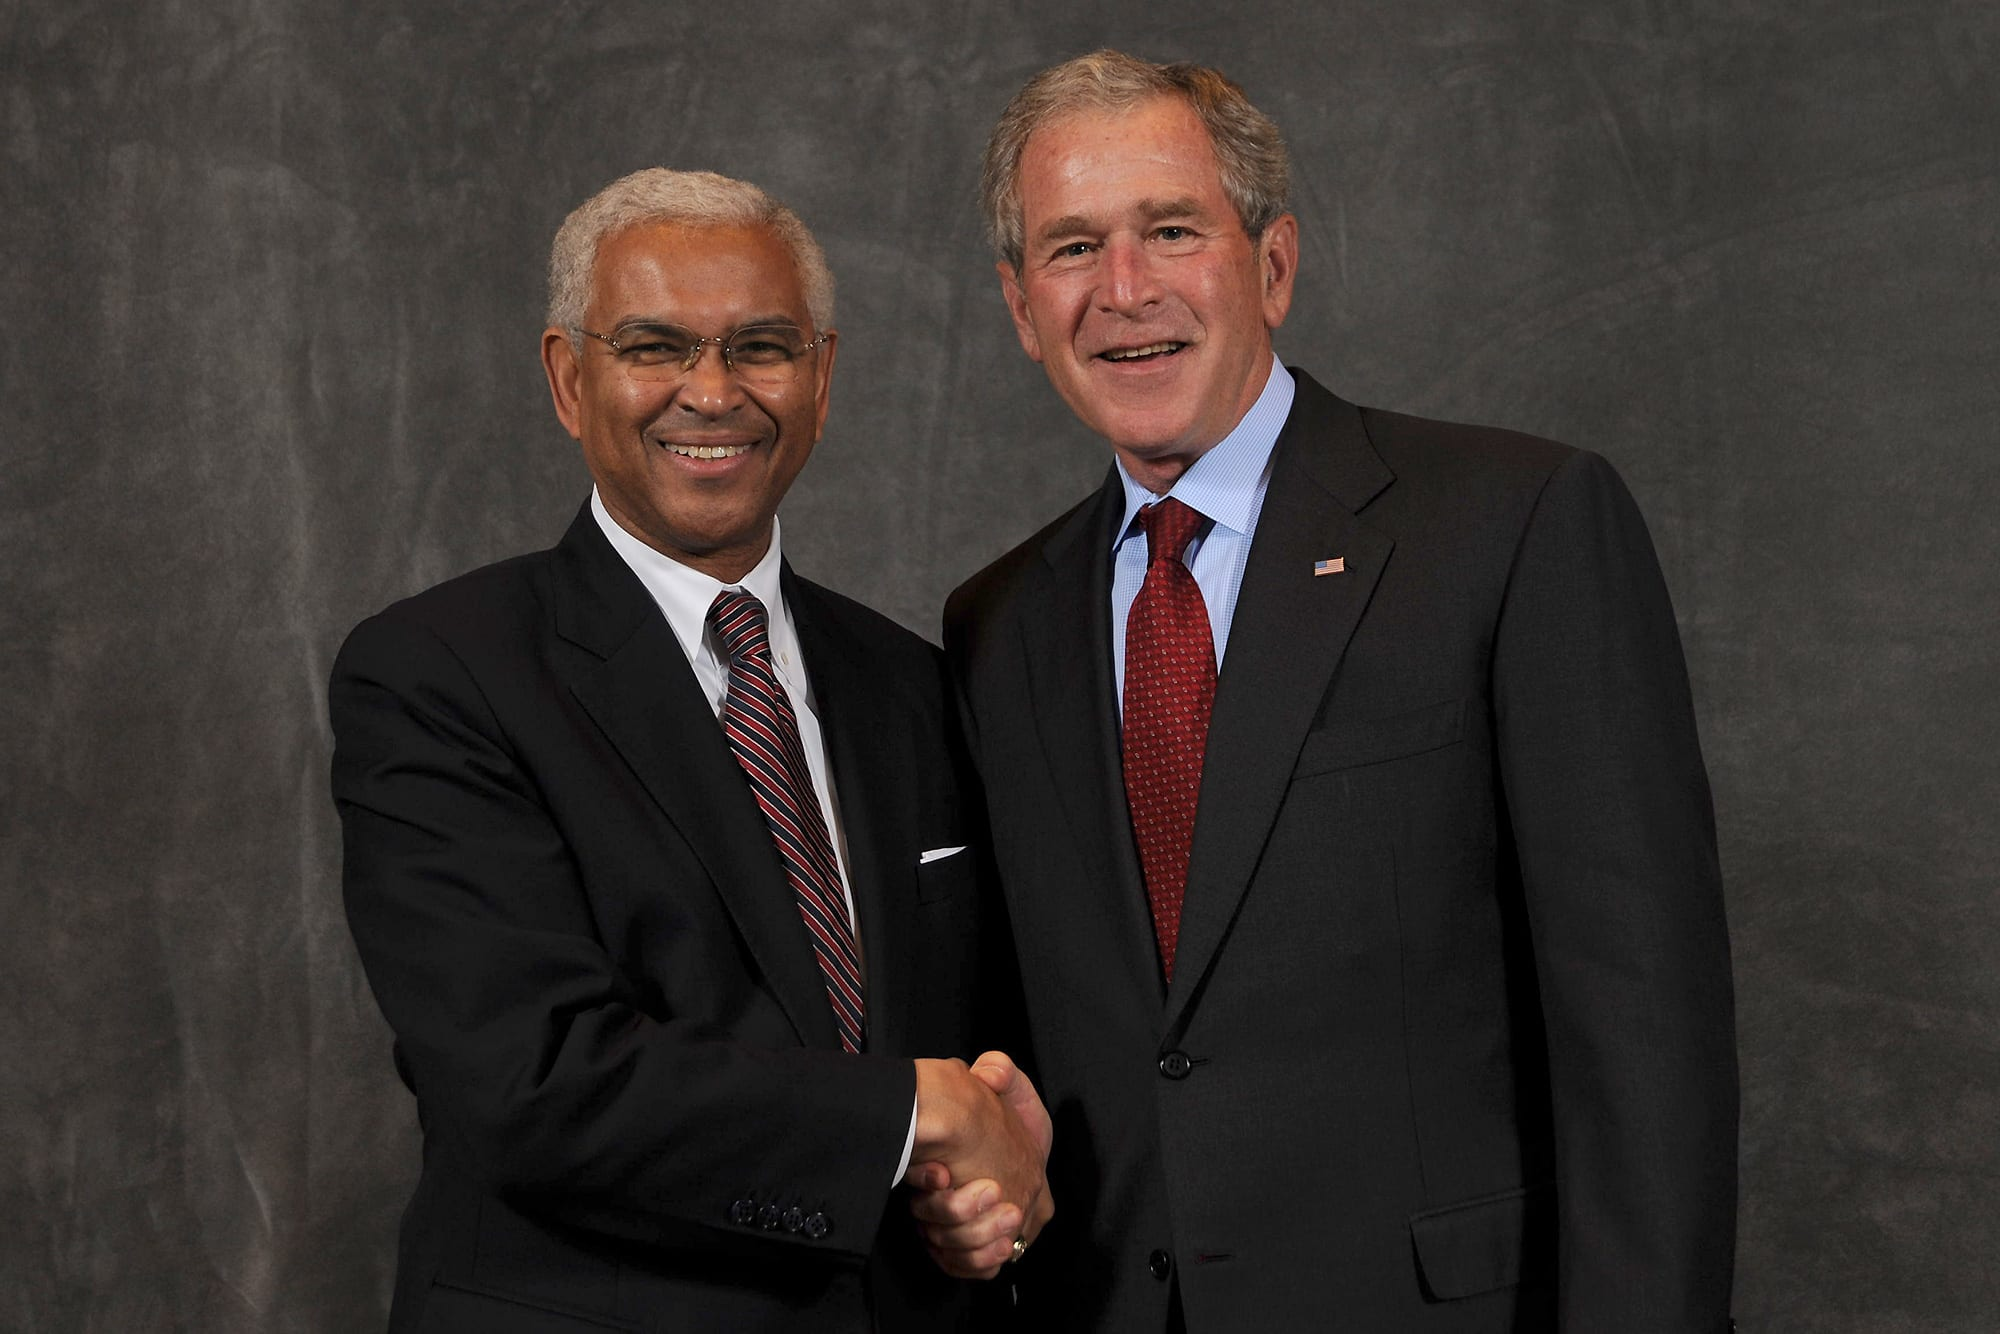 Dwight Raiford and George W. Bush